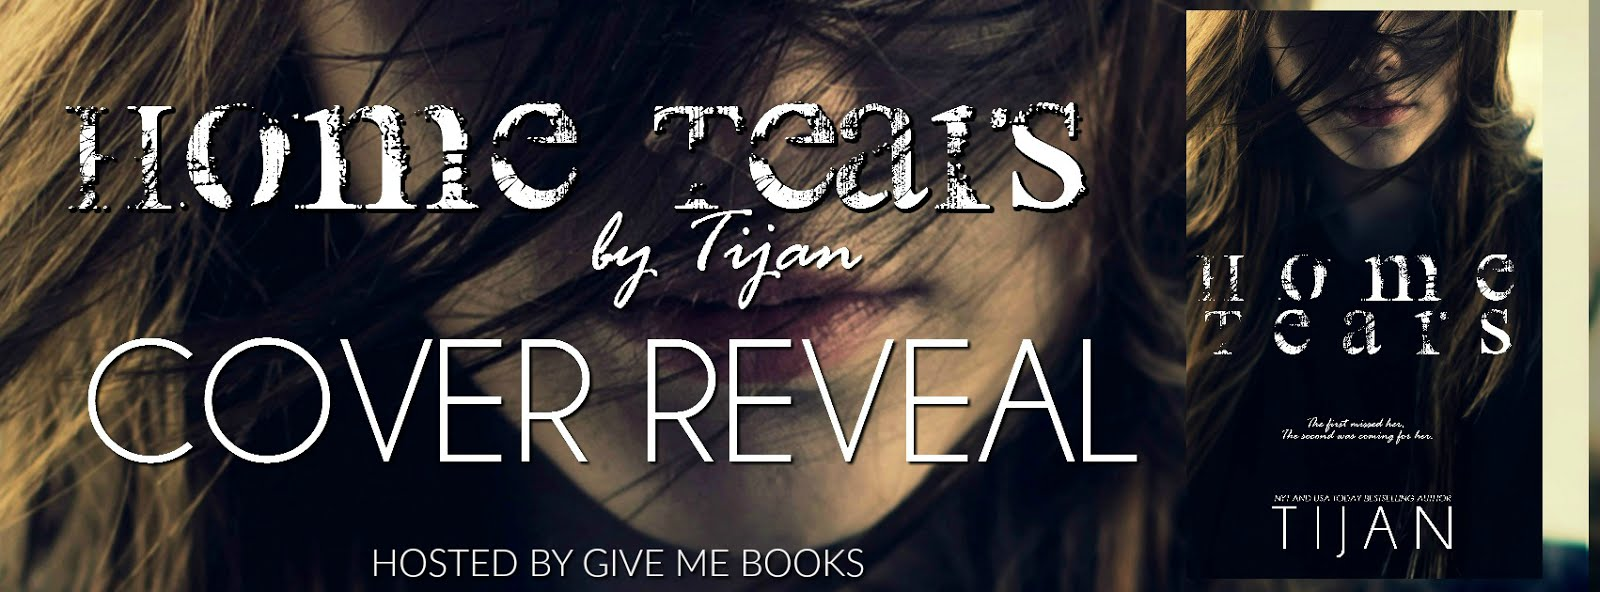 Home Tears Cover Reveal